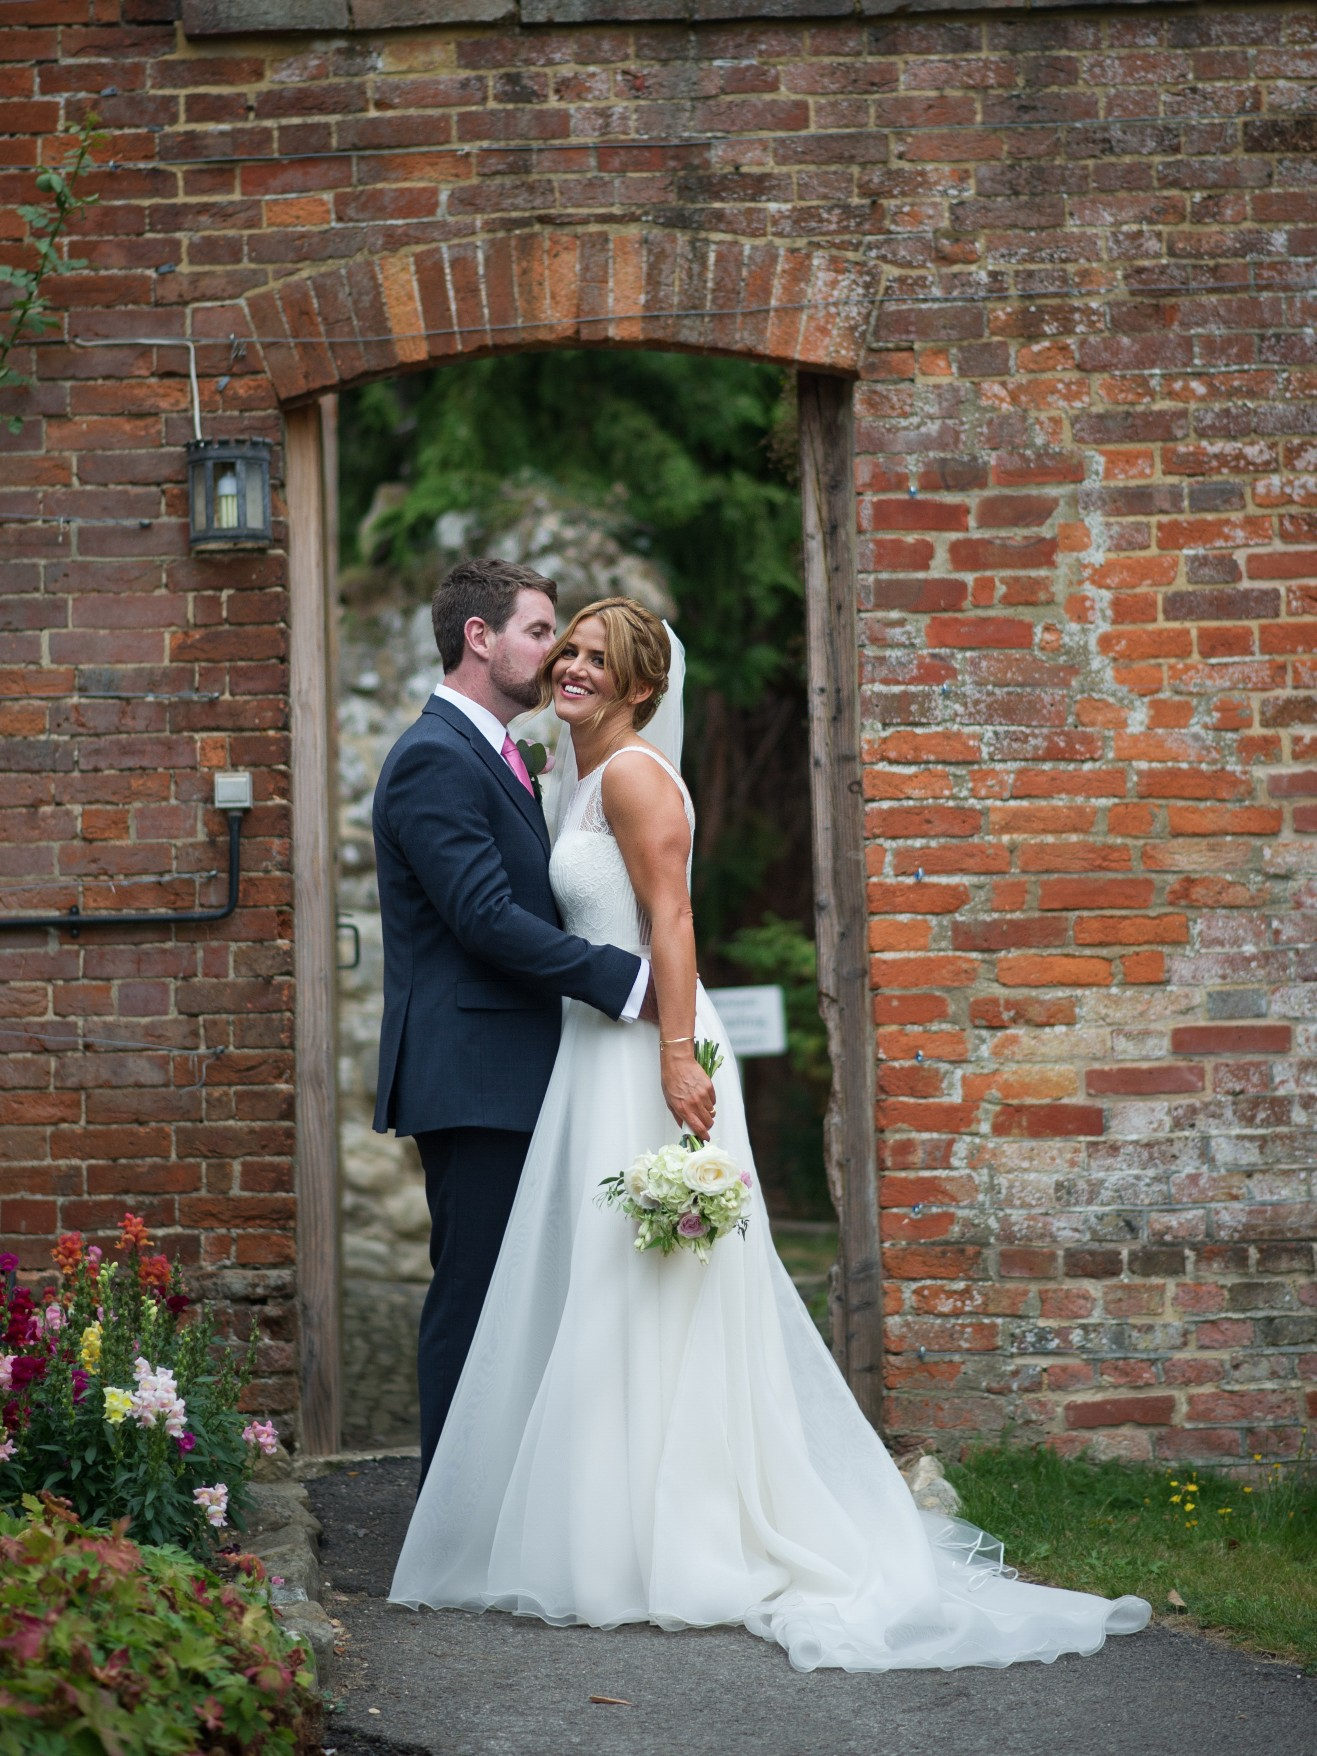 Wedding photography at Farnham Castle in Surrey - the bride and groom